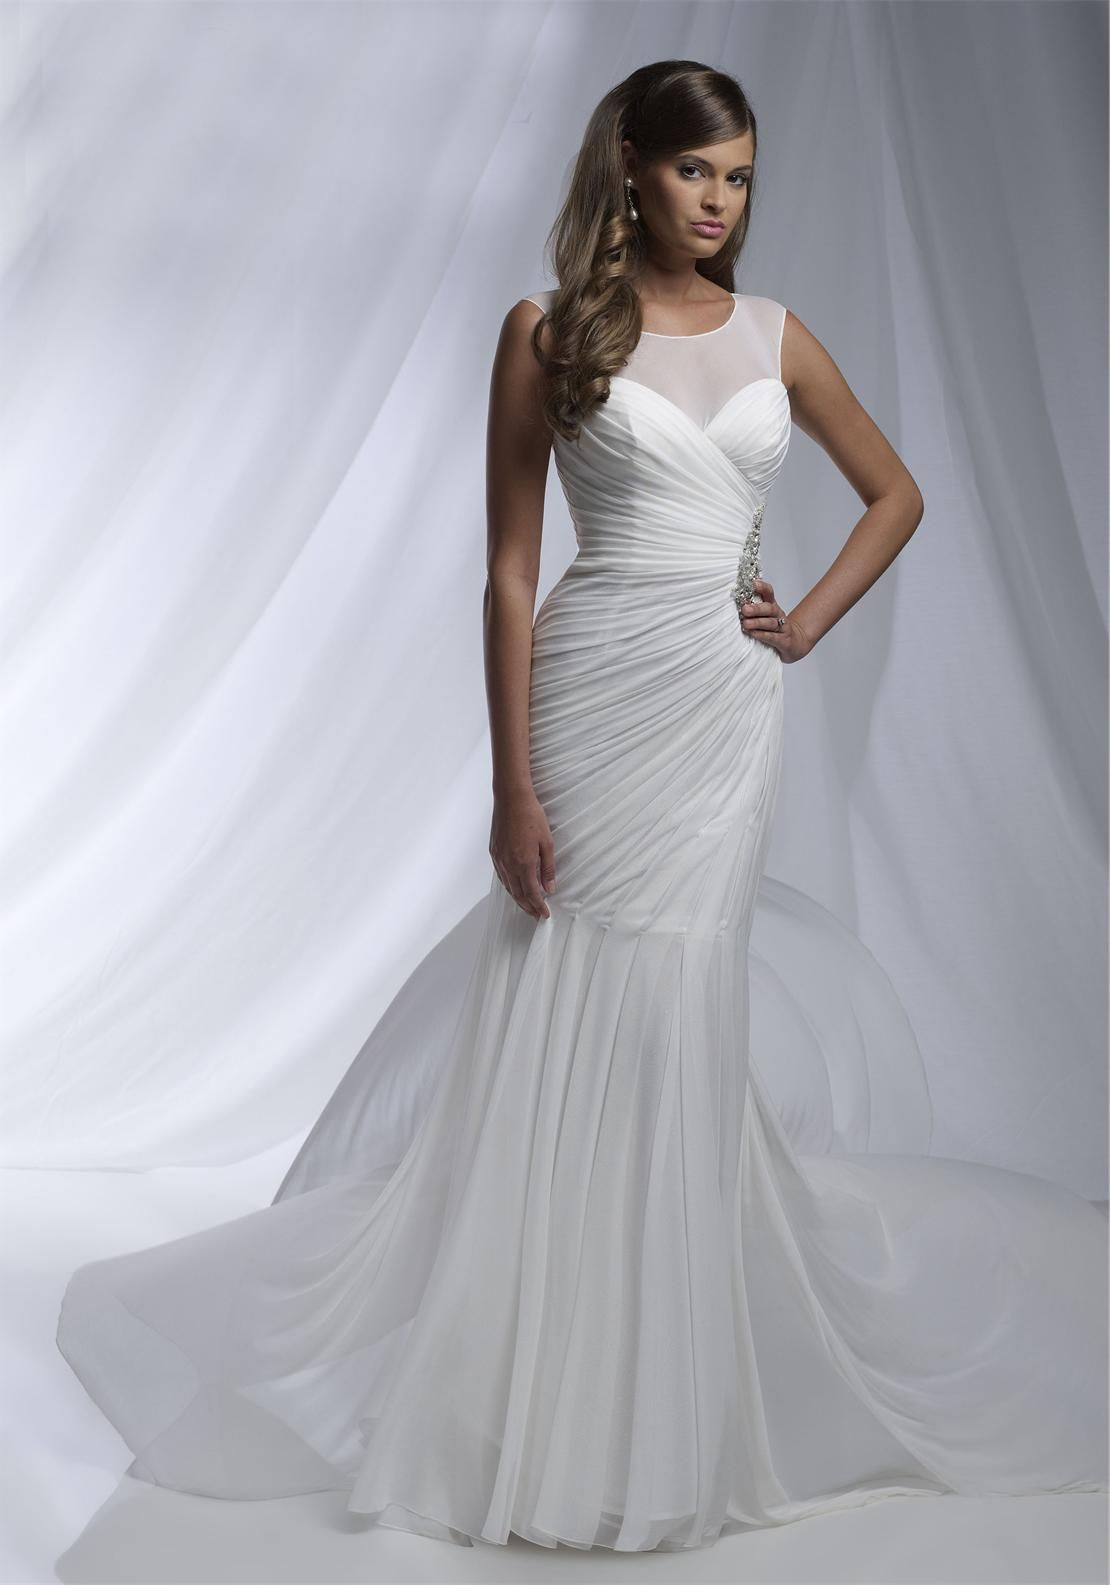 Art Couture AC343 | McElhinneys Bridal Rooms | Stunning Art Couture ...